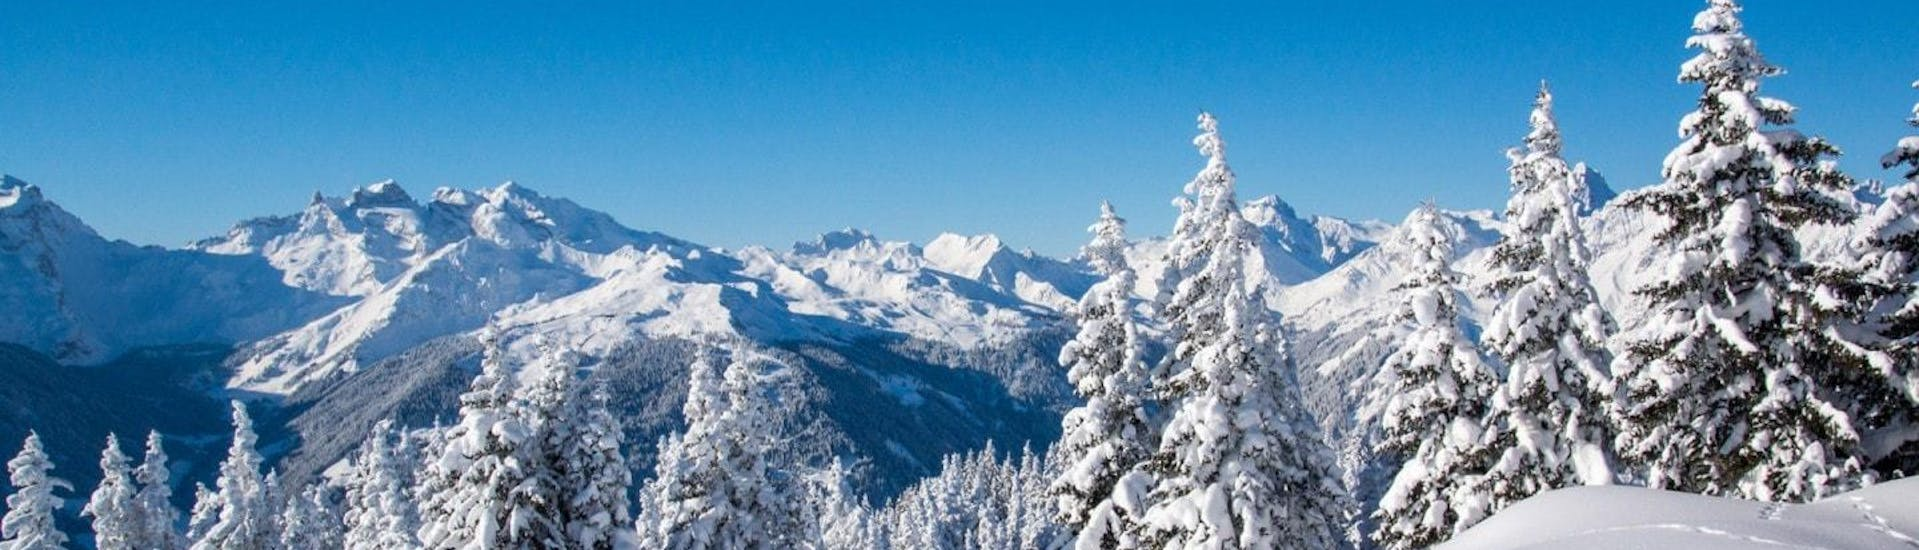 A view of a wintery landscape covered in deep poweder snow, in the ski resort of Morzine, where beginners can learn to ski with the help of the broad selection of ski lessons offered by the local ski schools.